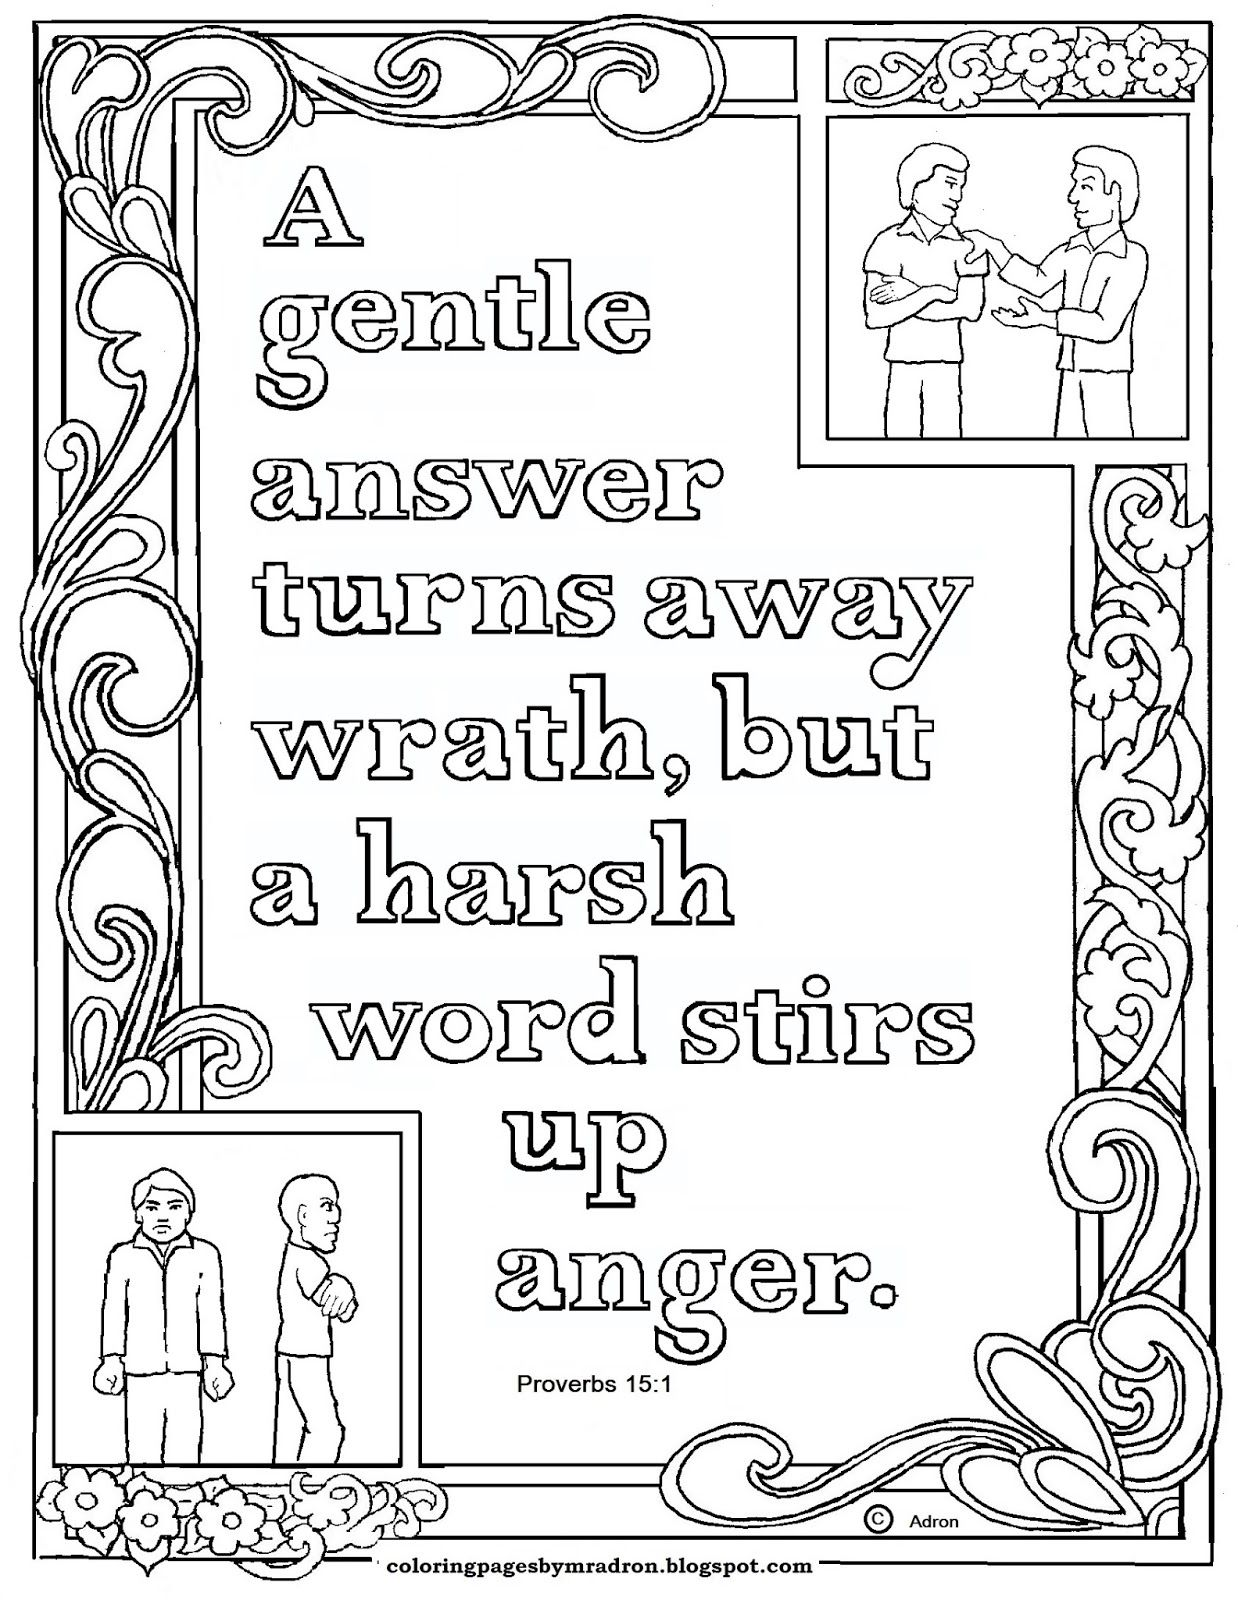 Proverbs 15 1 Bible Verse To Print And Color This Is A